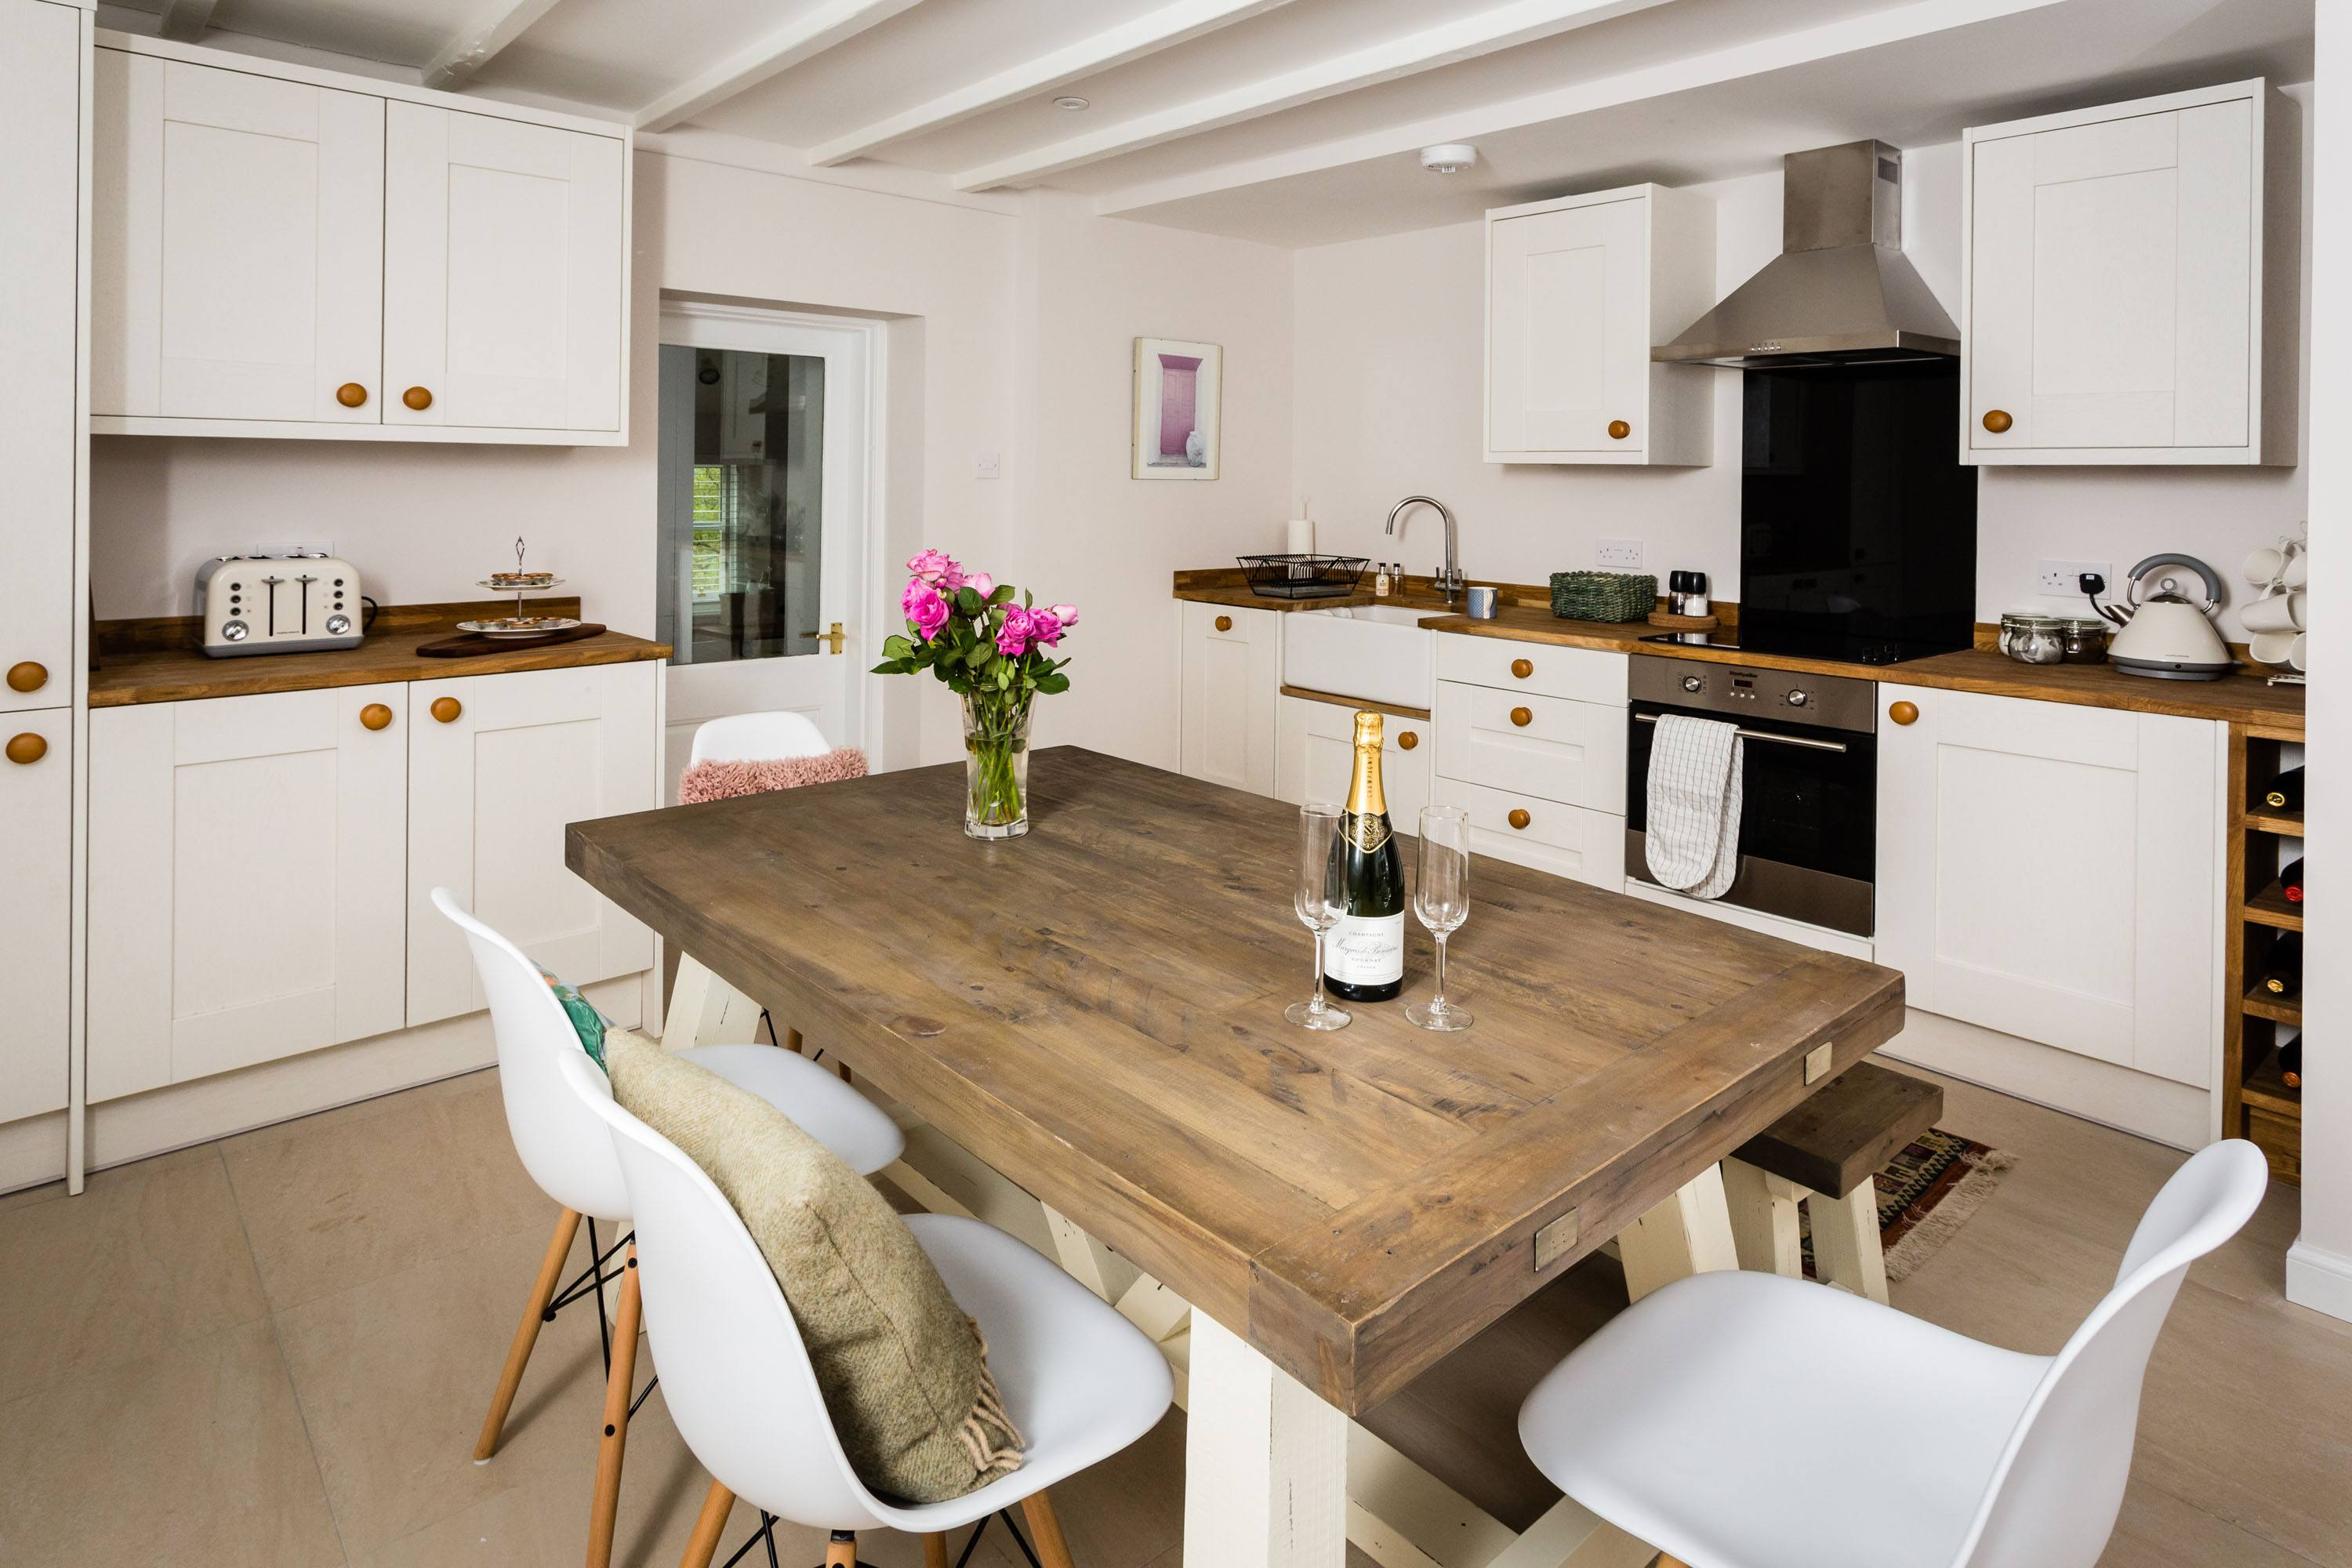 Croftness Cottage kitchen with dining table which seats 6